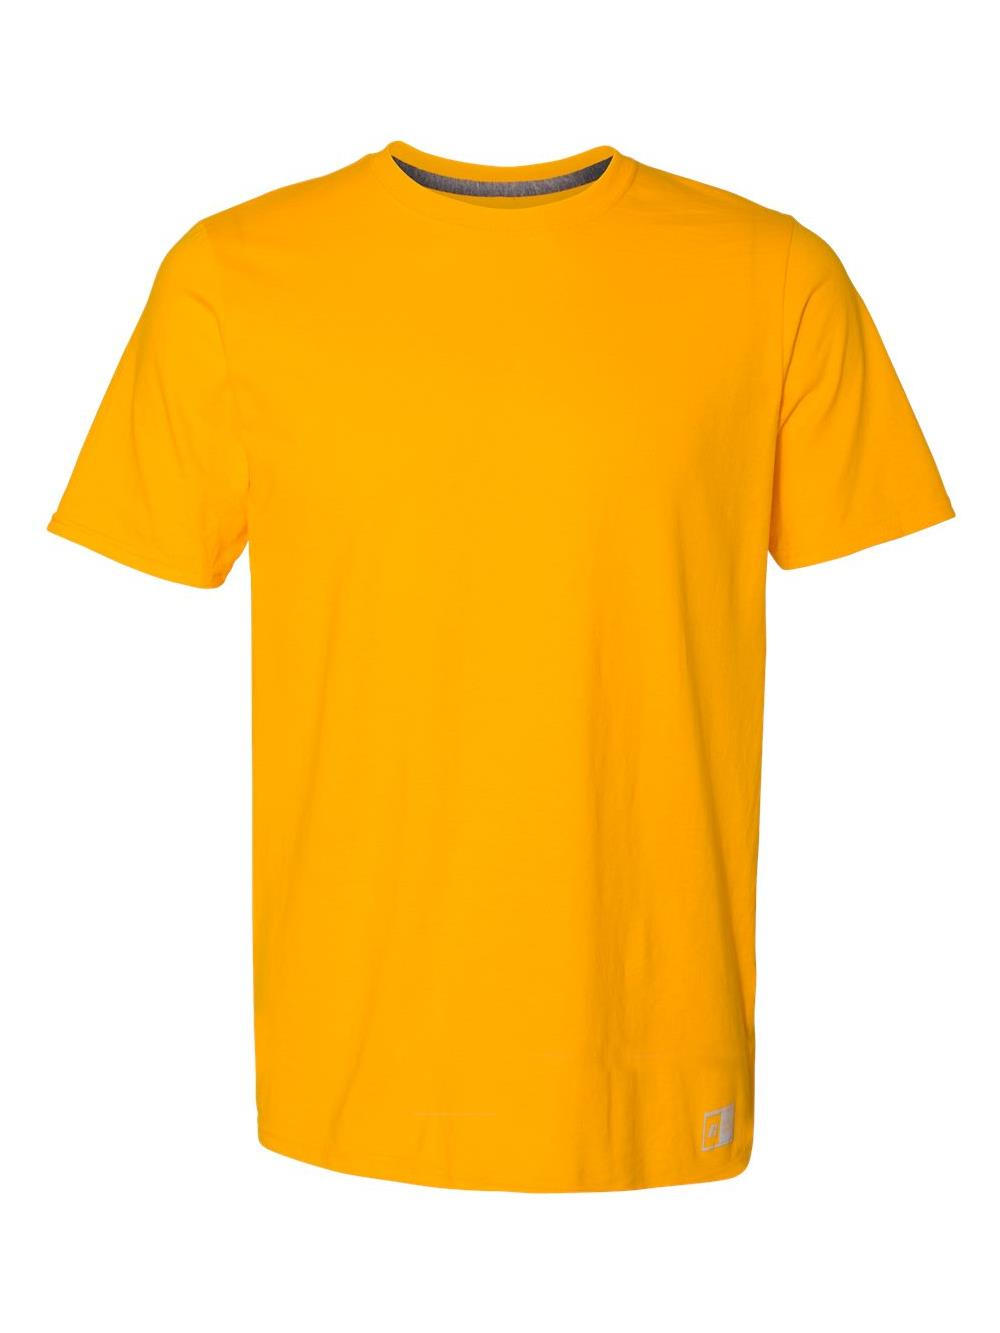 Russell Athletic T-Shirts Essential 60/40 Performance Tee